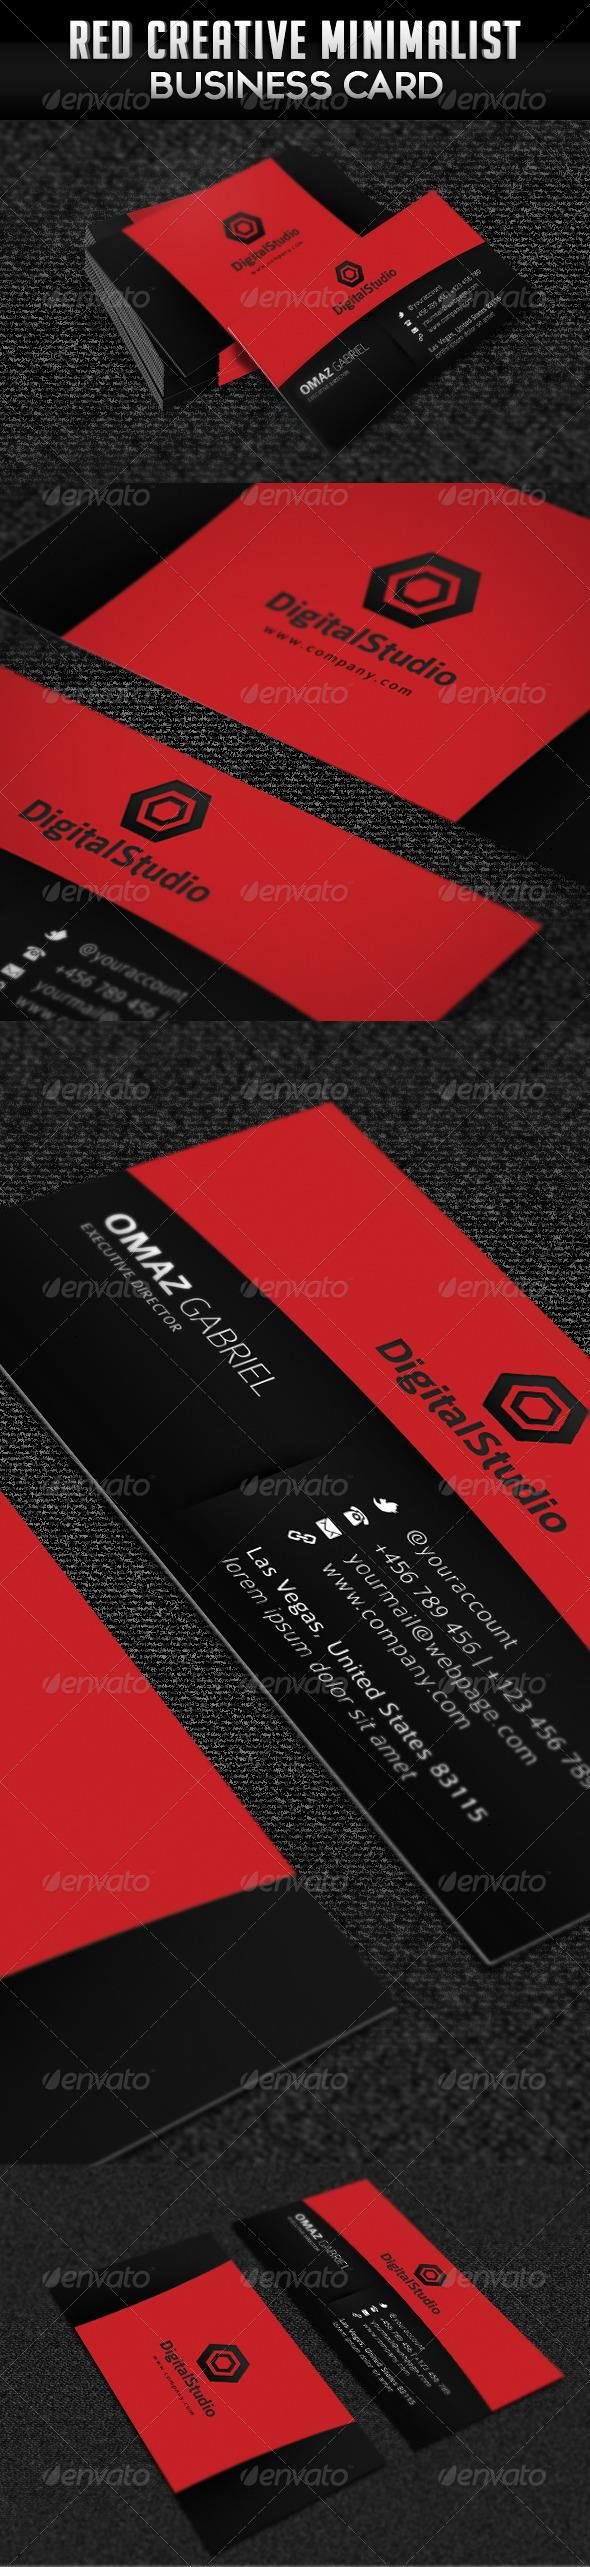 Best 1000 Business Card Design Images On Pinterest Business Card